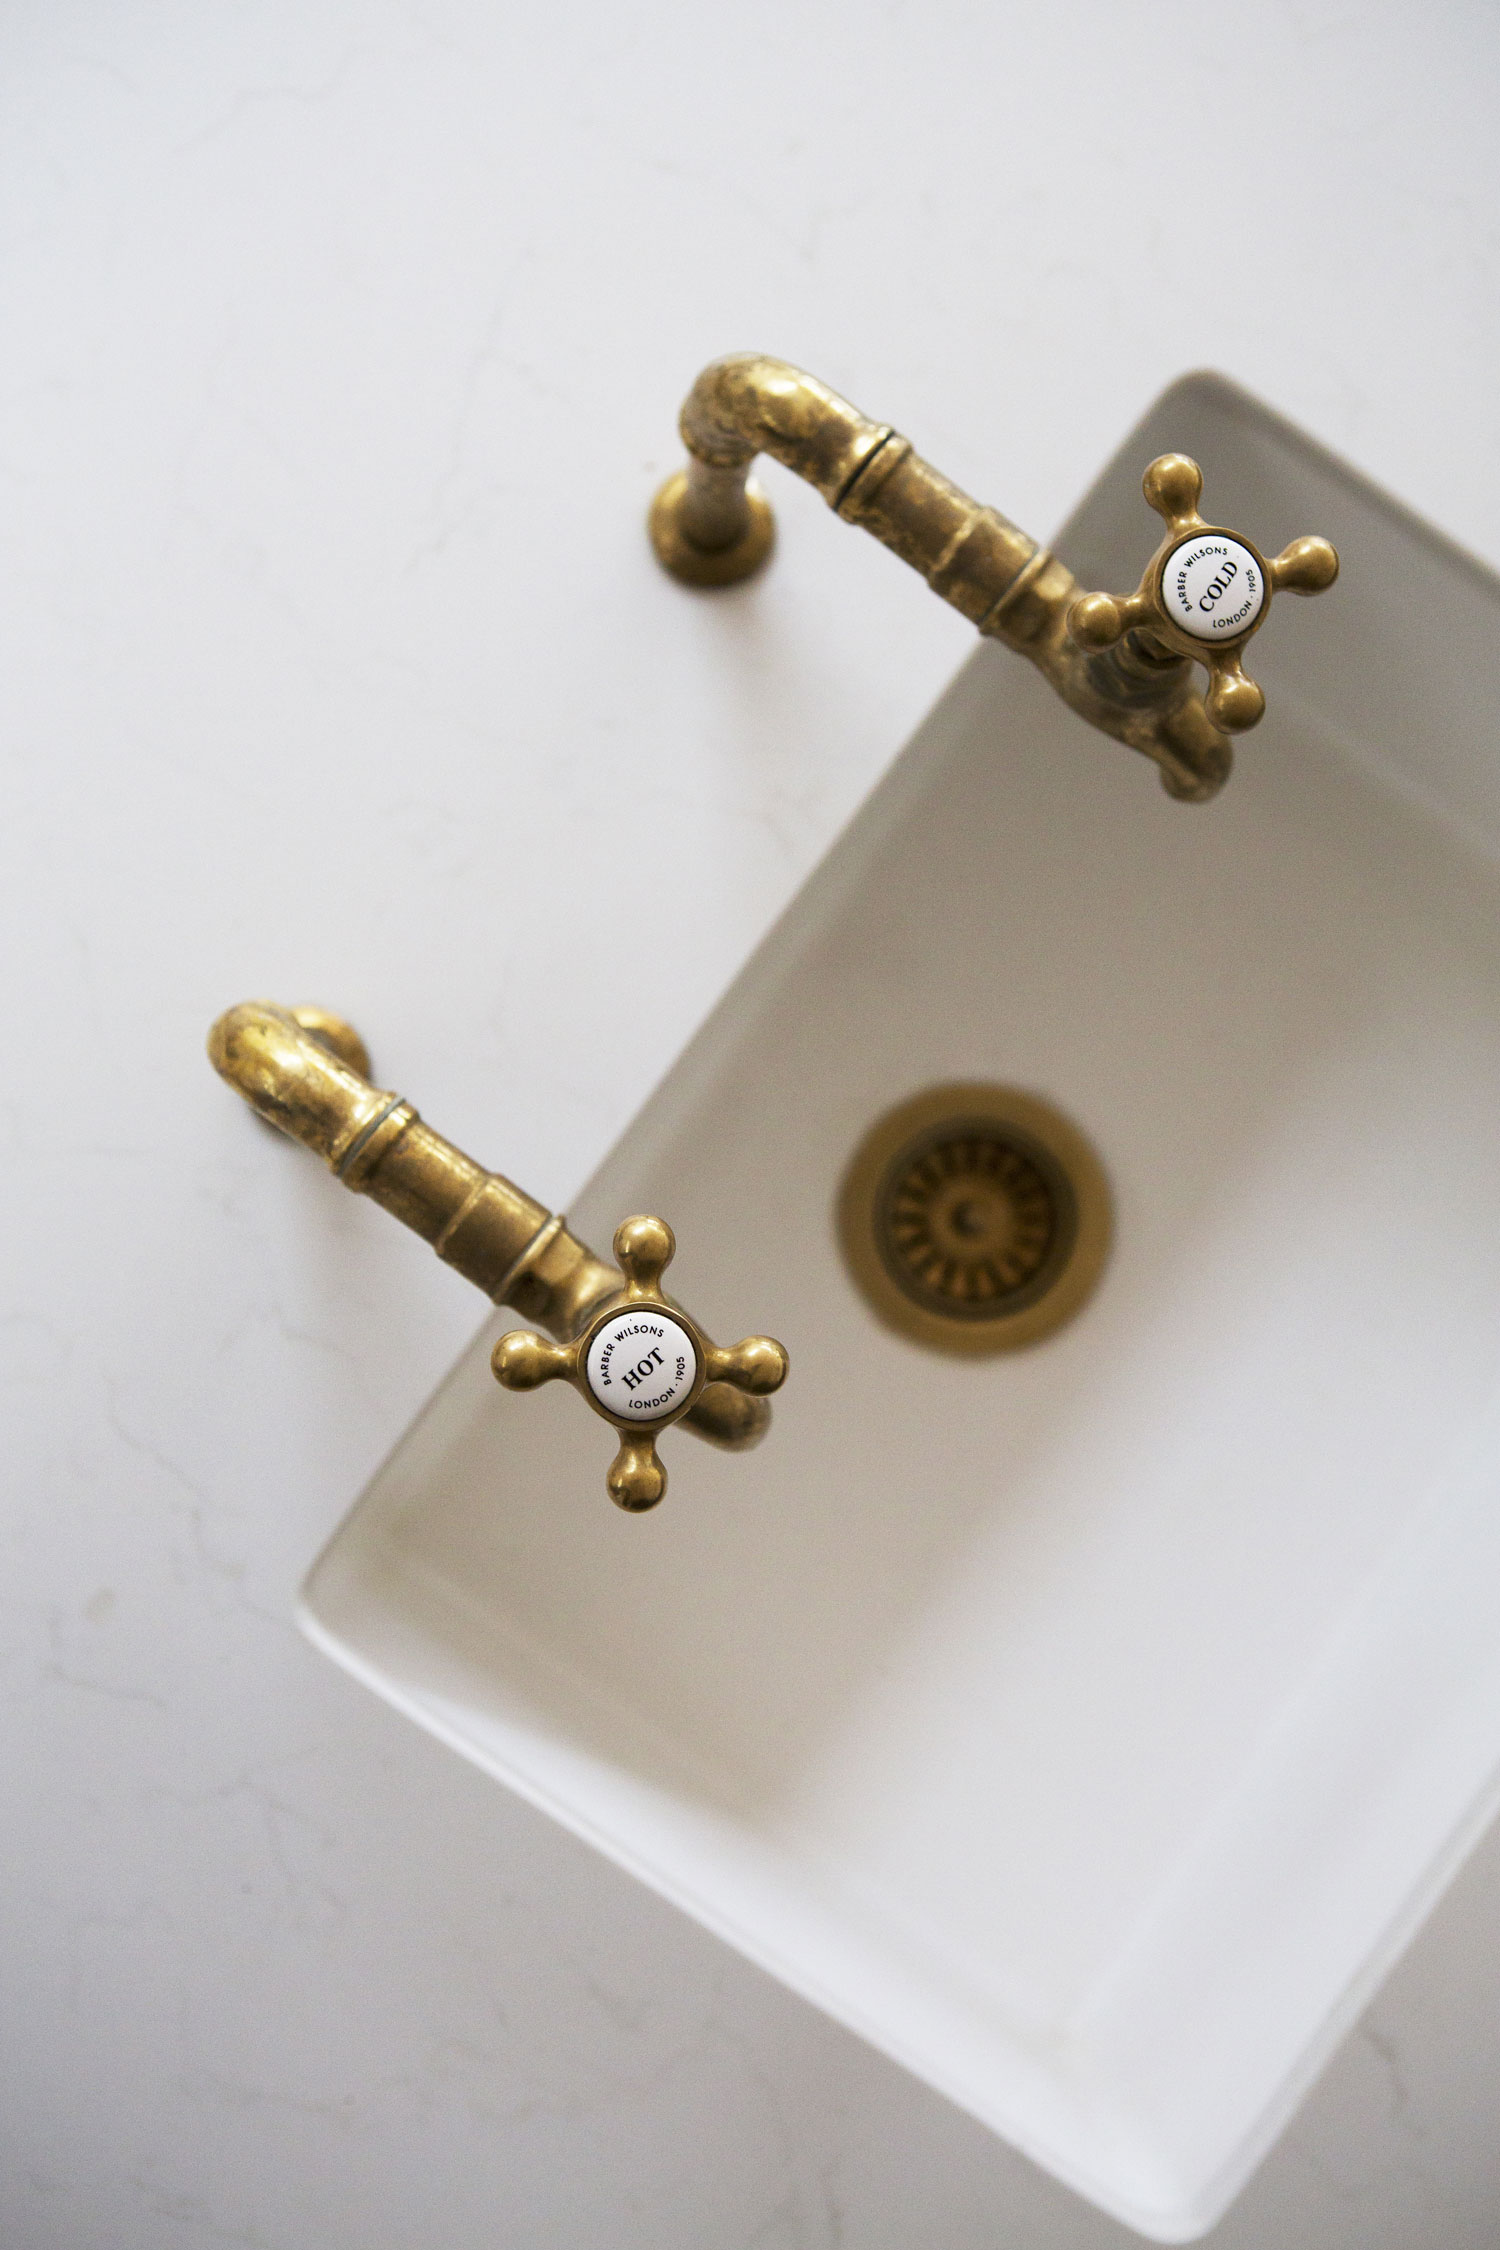 brass taps, victoriana vicotiran design, kitchen sink